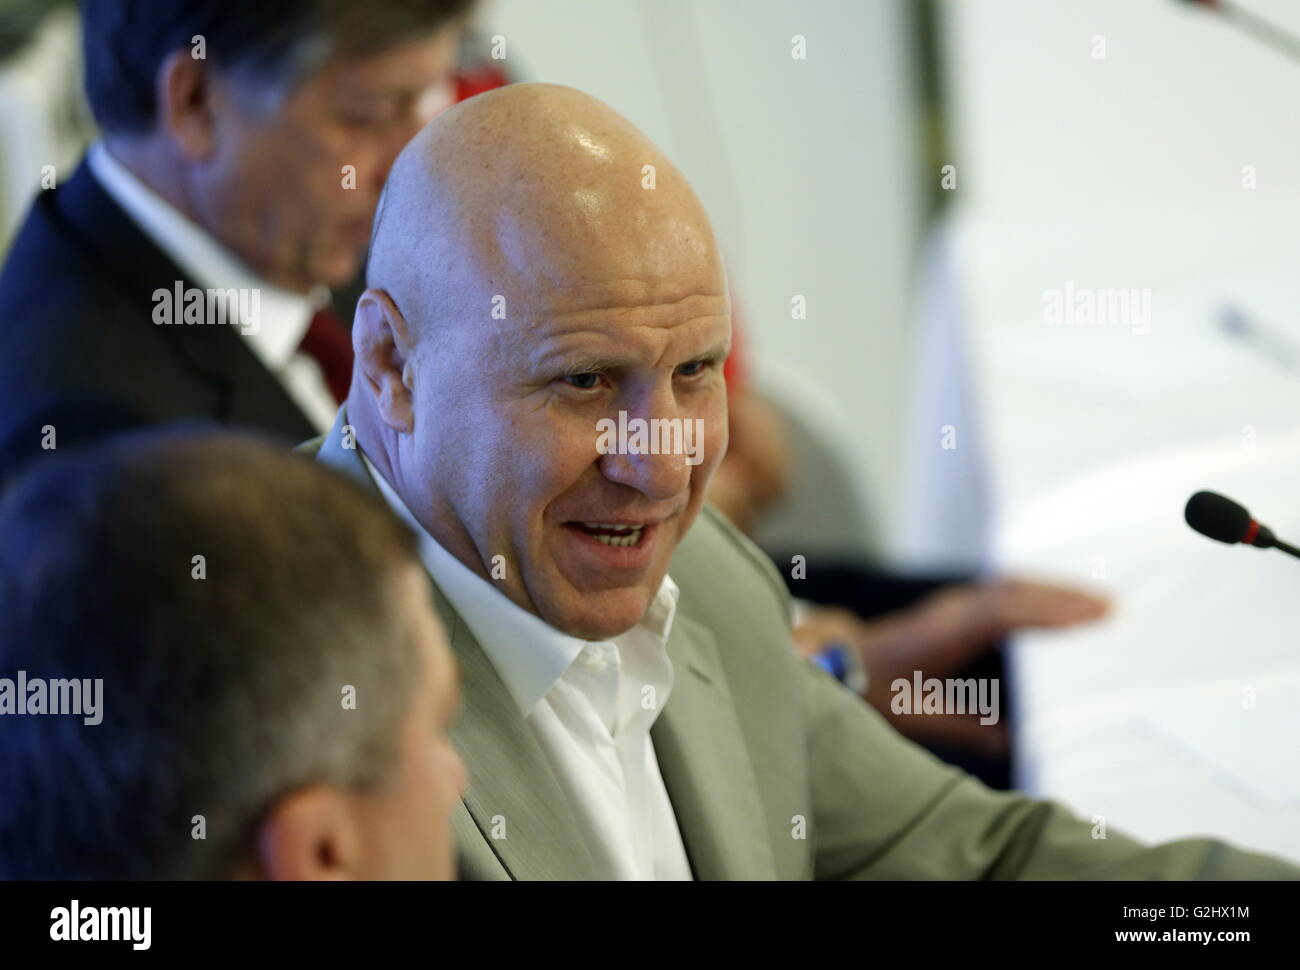 MOSCOW, RUSSIA - JUNE 1, 2016: Russian wrestler Mikhail Mamiashvili, the president of the Russian Wrestling Federation, - Stock Image